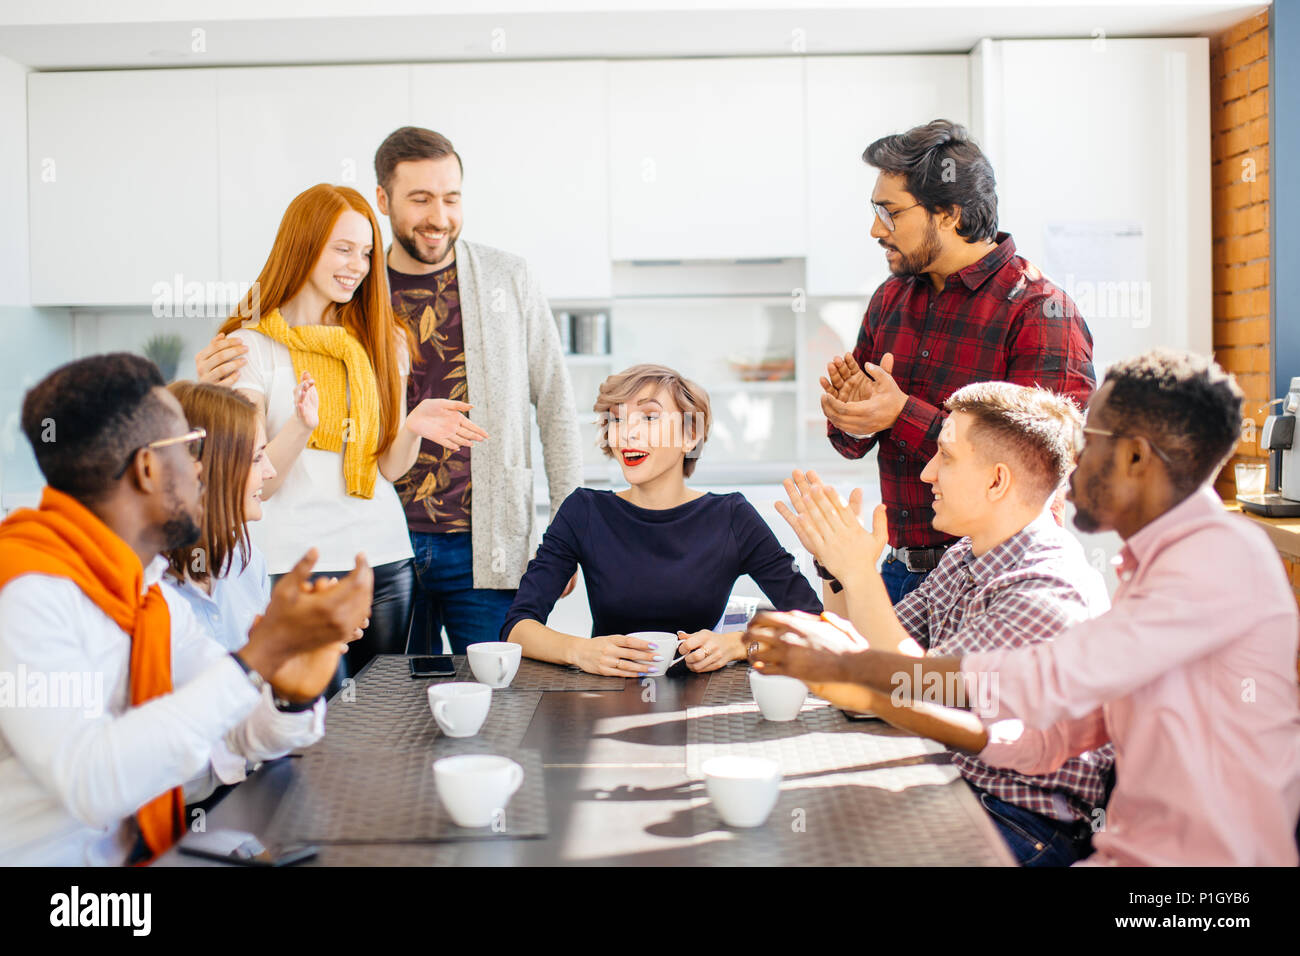 employees enjoying spending time togeter while drinking coffee - Stock Image